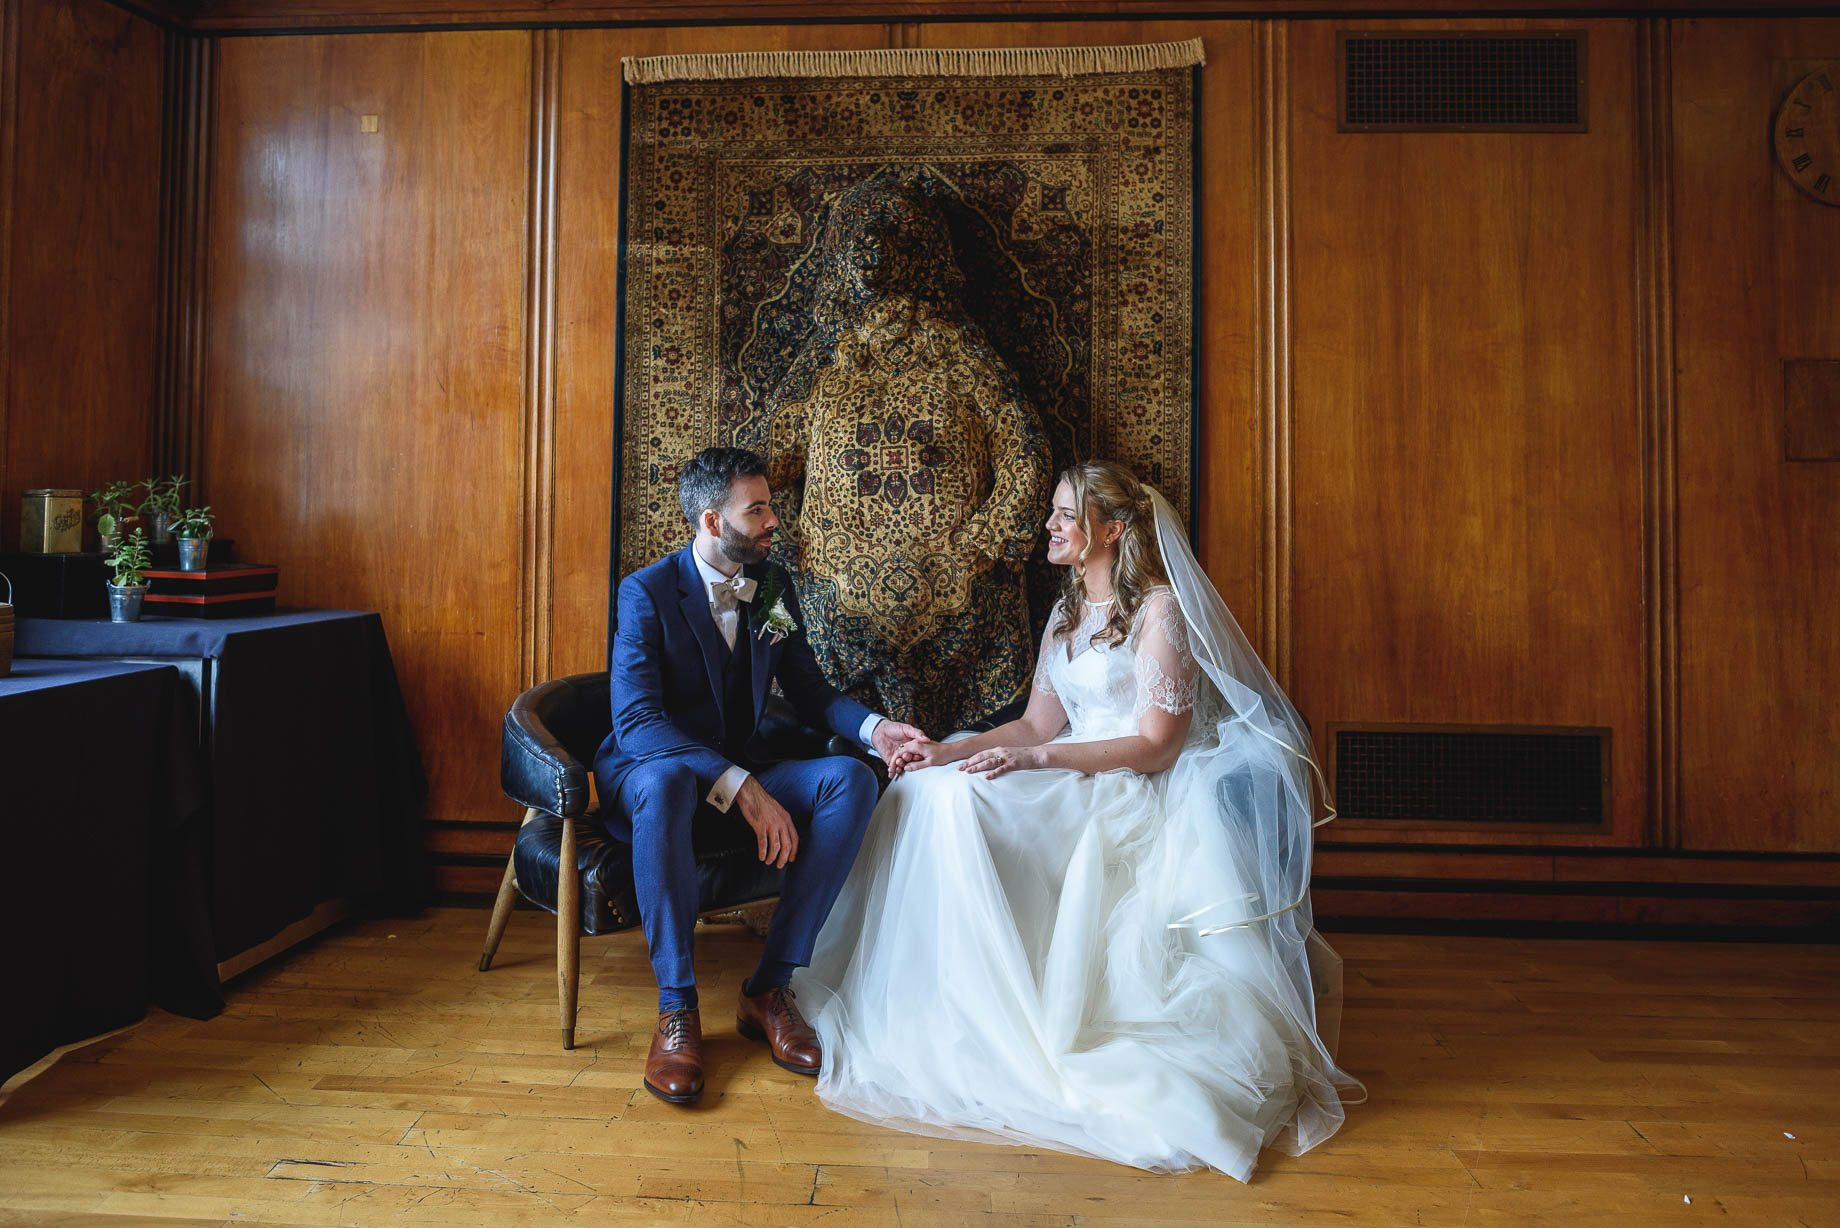 London Wedding Photography - Guy Collier Photography - LJ + Russell (74 of 155)